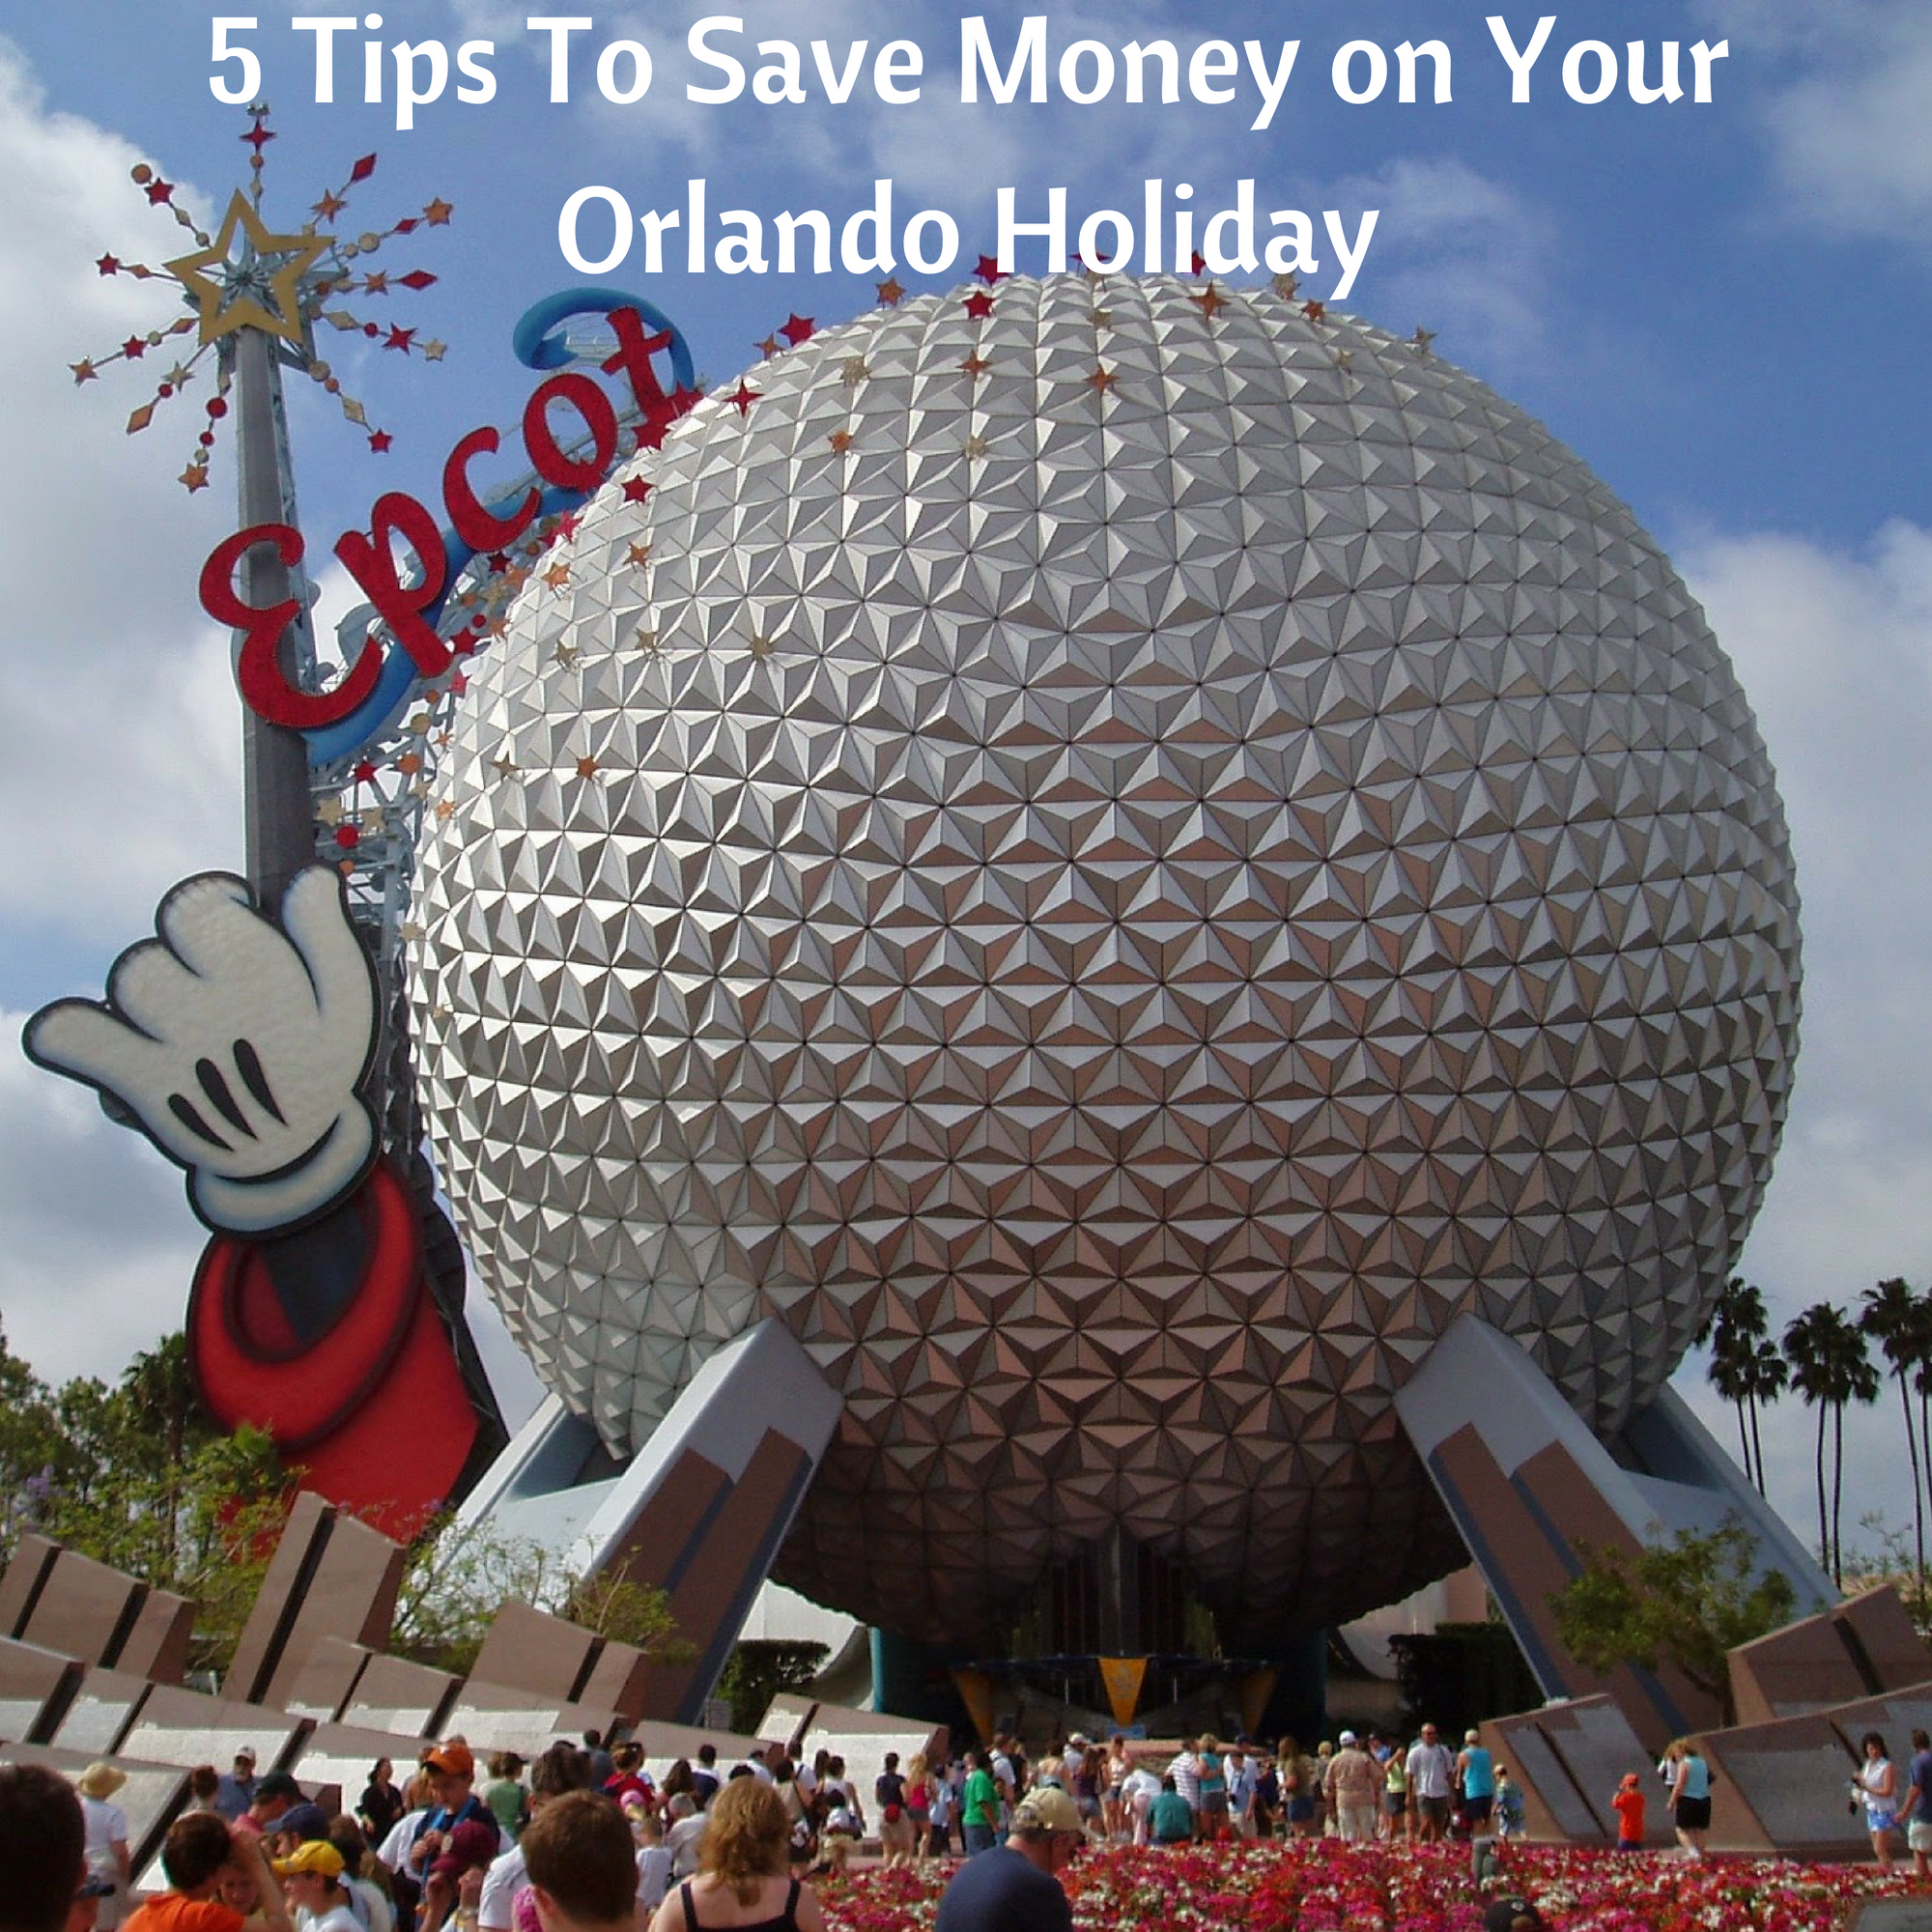 5 Tips To Save Money on Your Orlando Holiday